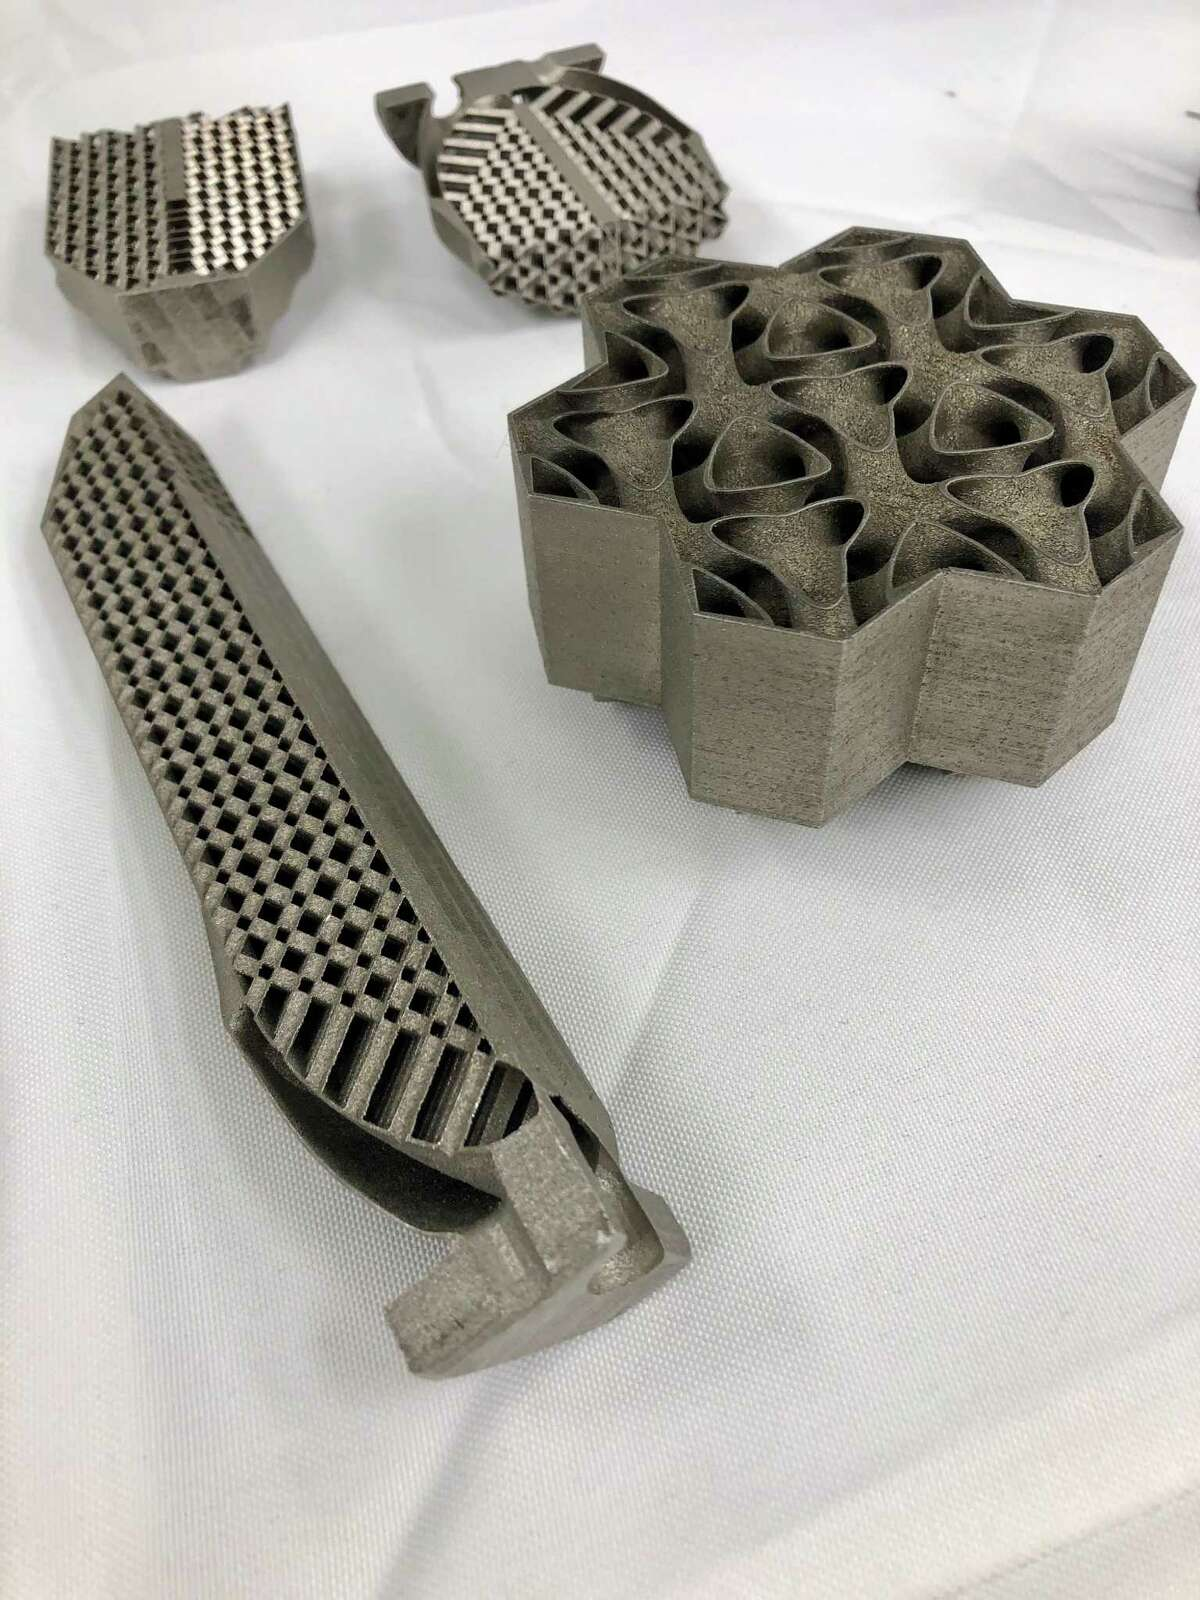 Test samples of 3D-printed heat exchangers made in GE's Additive Manufacturing Lab in Niskayuna. The heat exchanger regulates the airflow over the sorbent materials in the device that GE is developing with leading university scientists across the country,